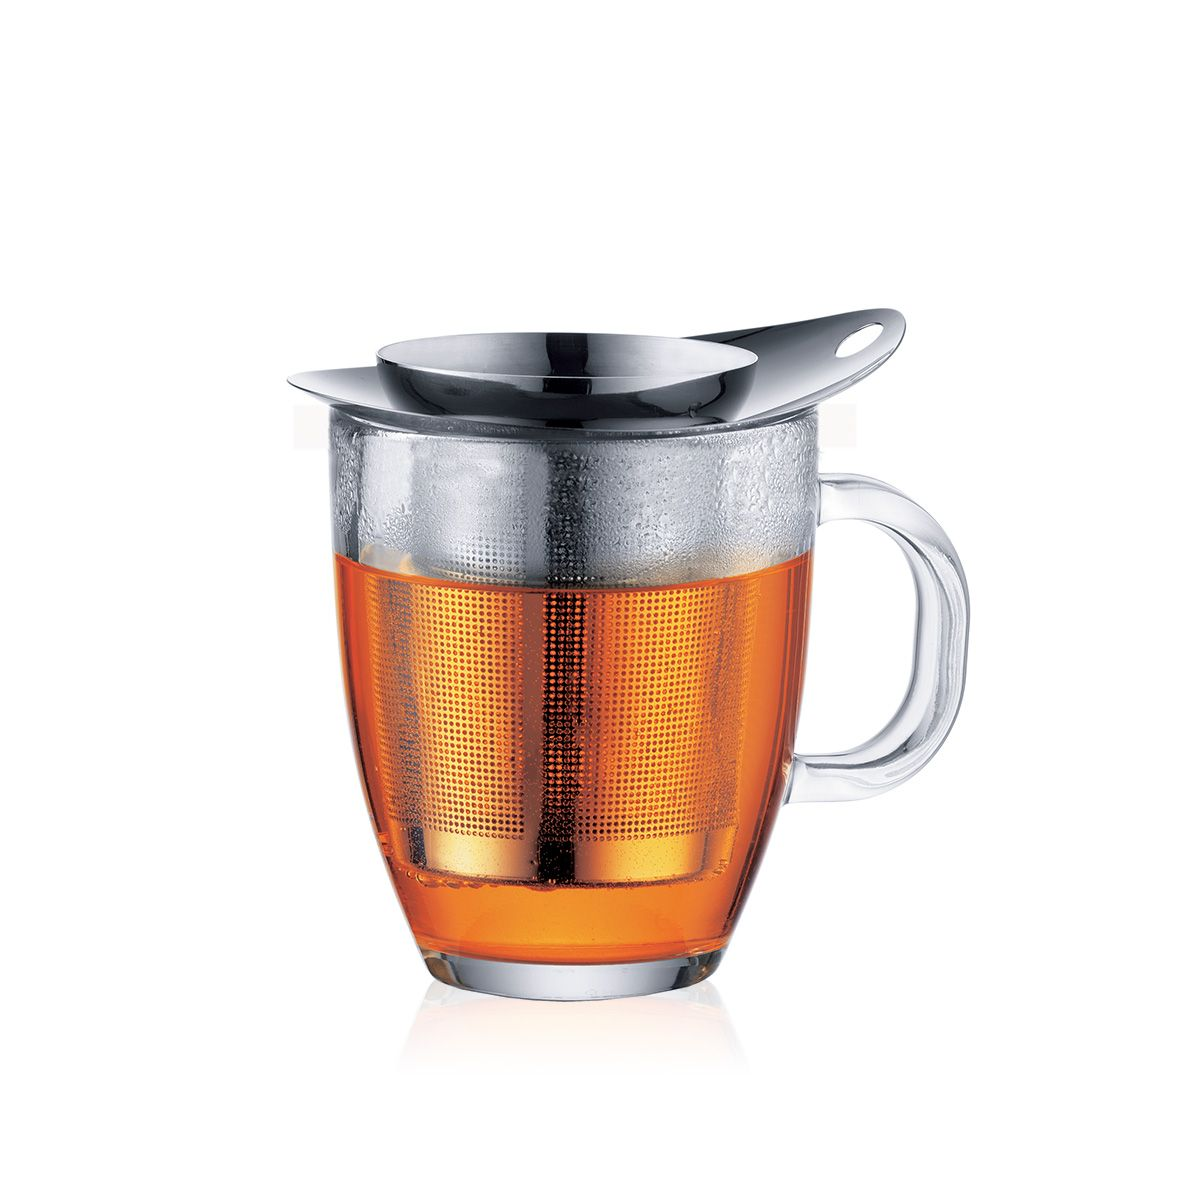 tea mug with infuser - Bodum